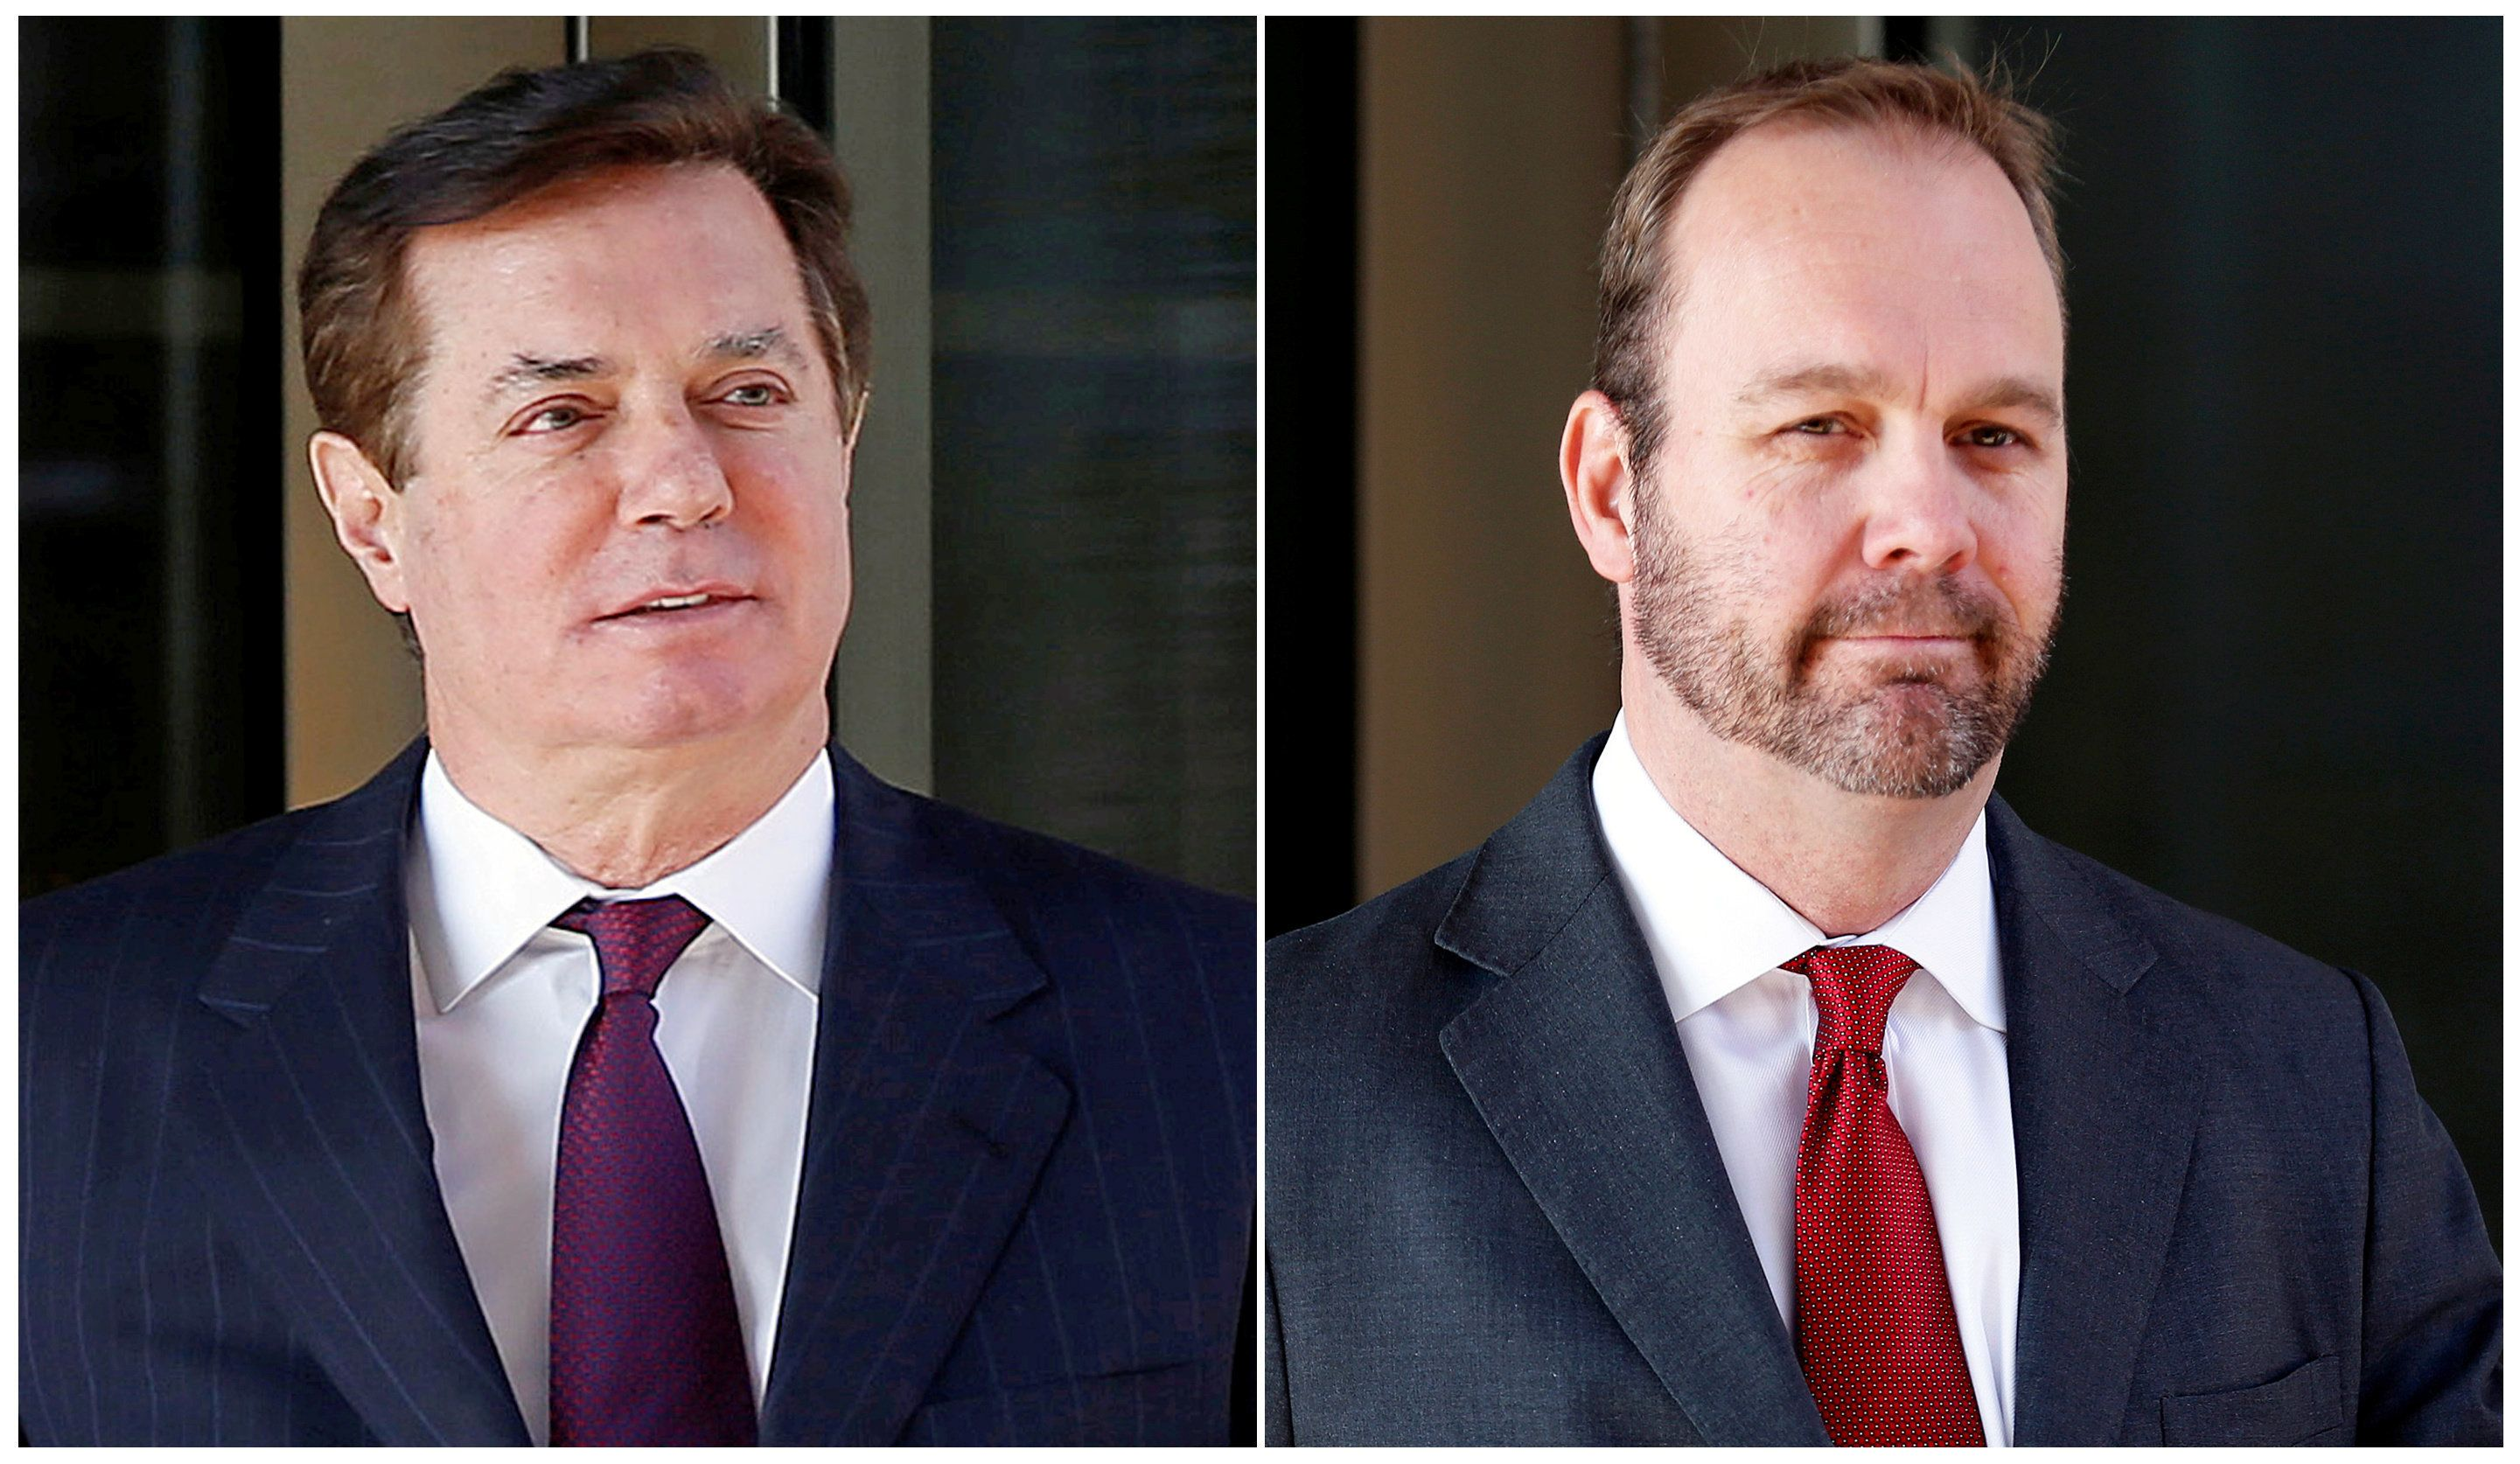 Rick Gates Forced Into Admitting Extramarital Affair by Paul Manafort's Lawyer